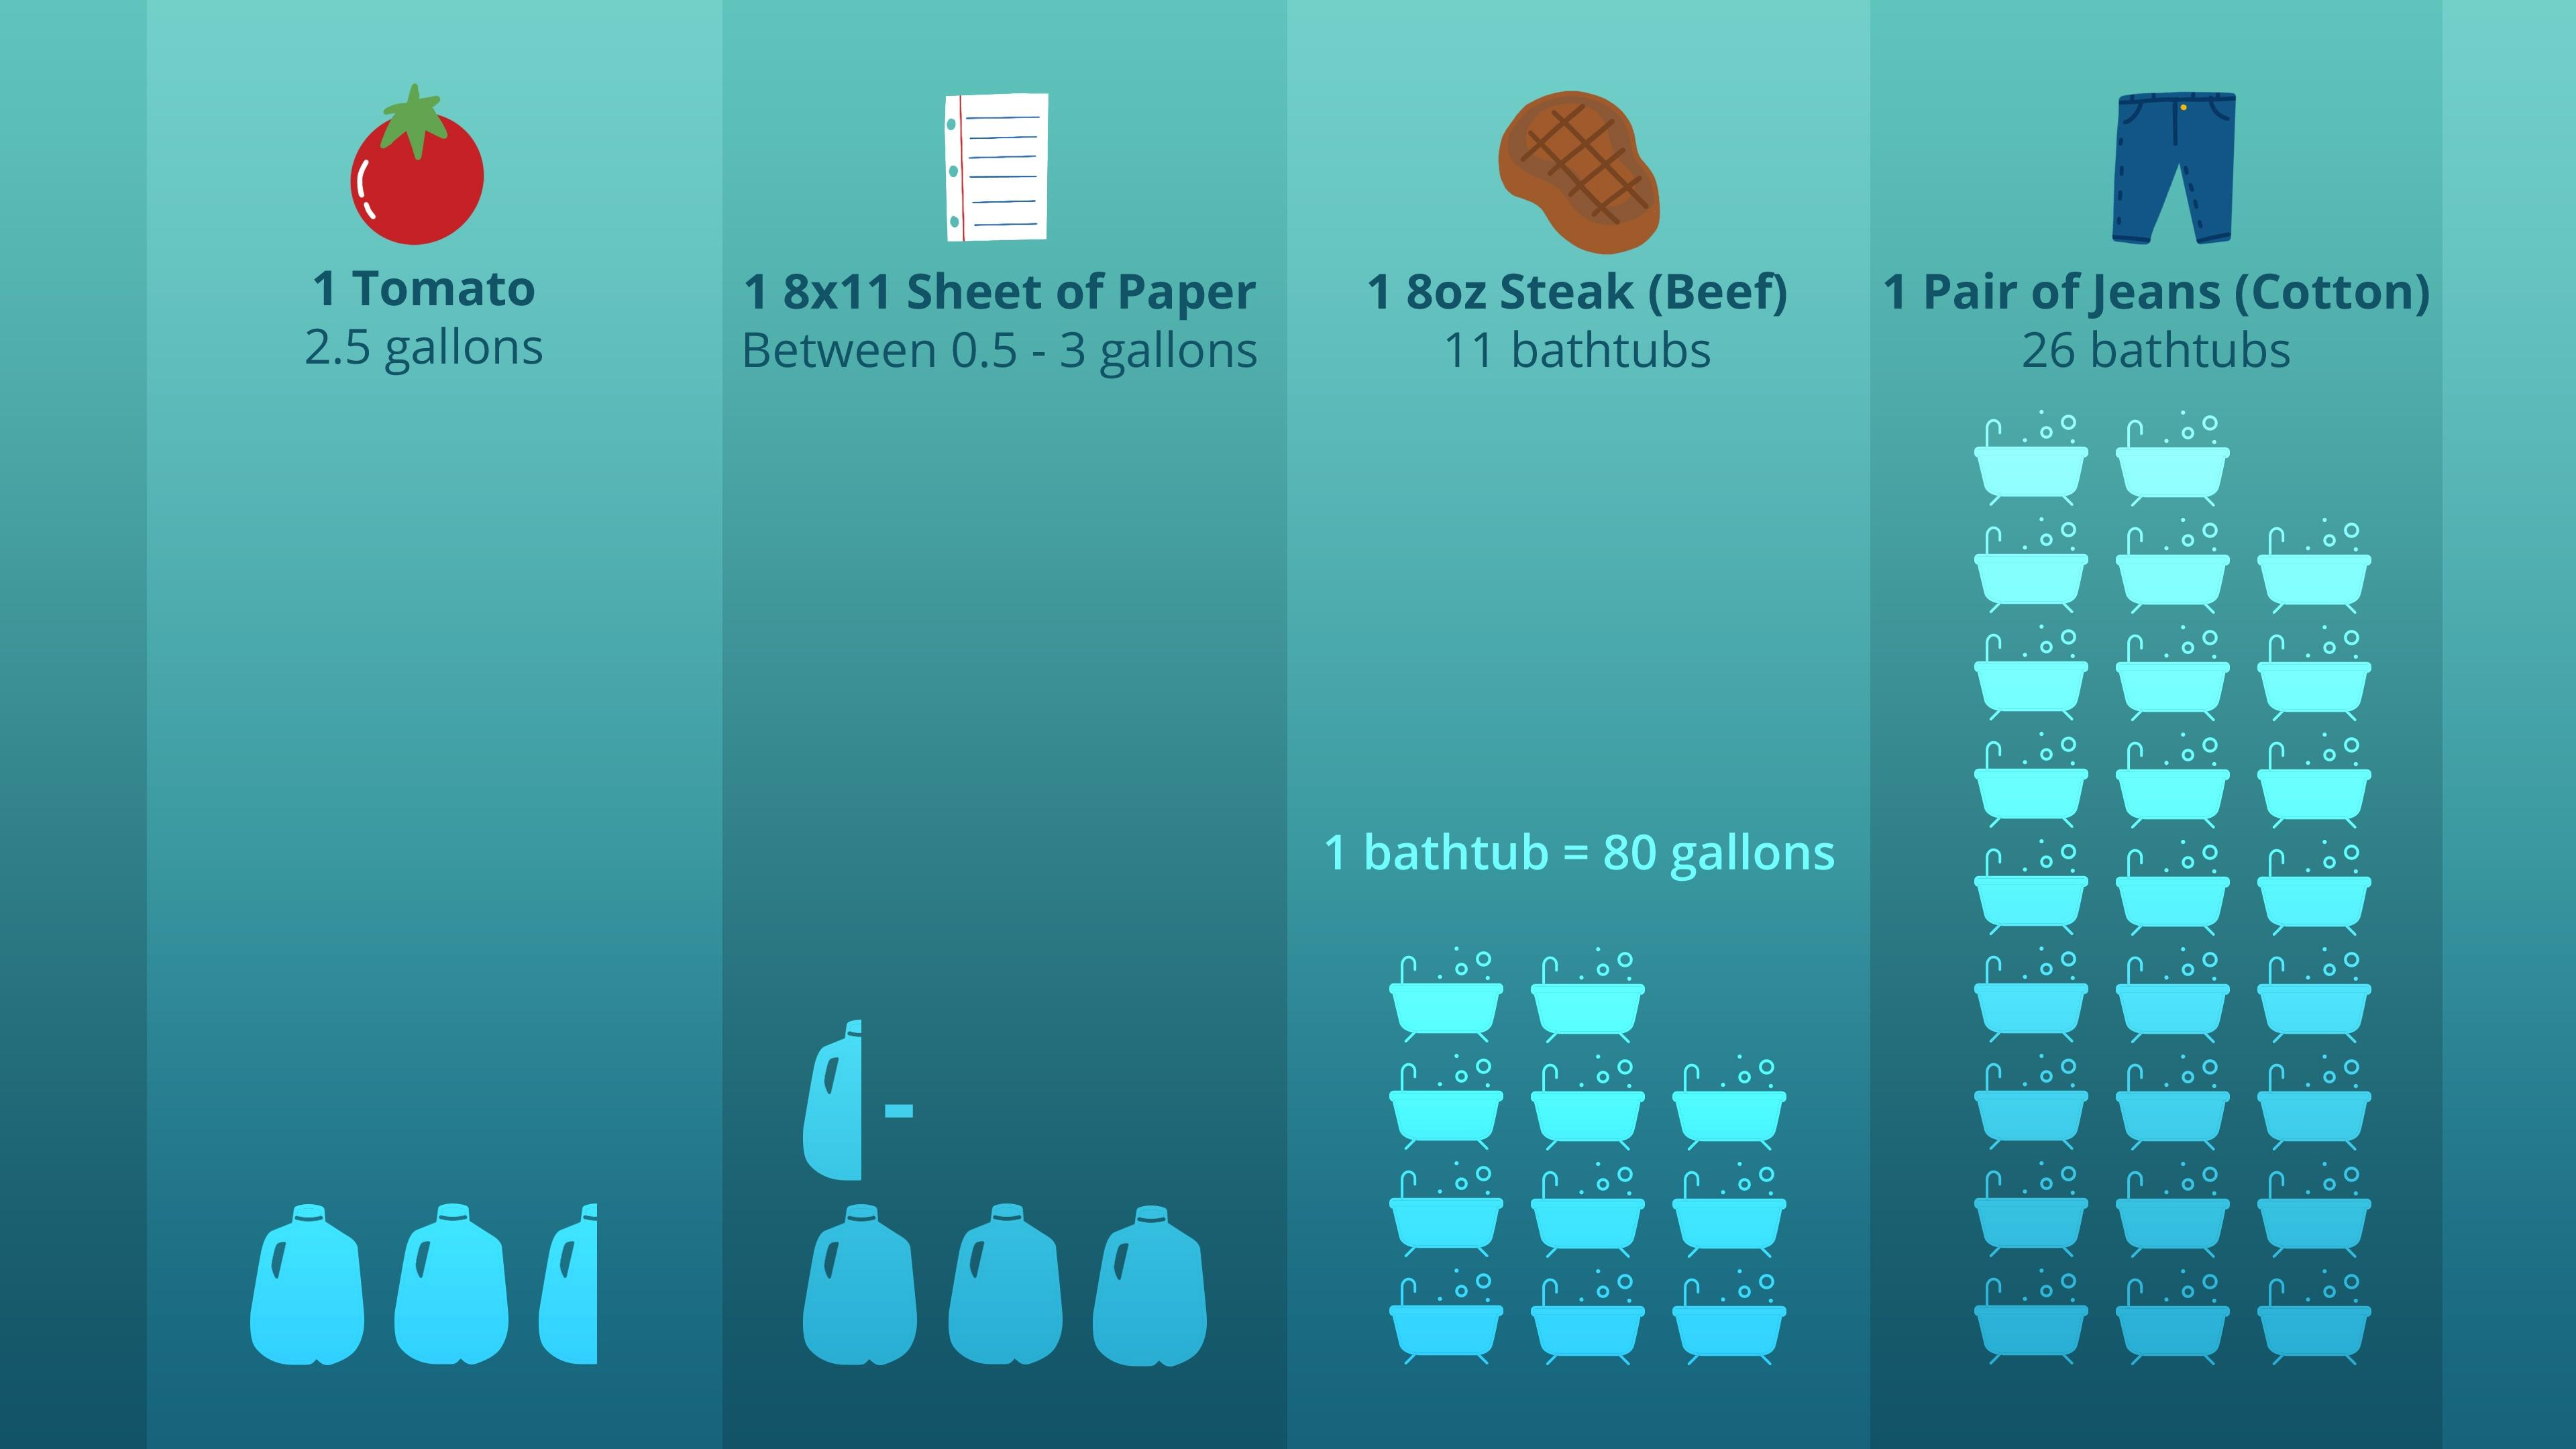 An inforgraphic showing how much water it takes to produce 1 tomato, 1 sheet of paper, 1 8oz steak and a pair of jeans.